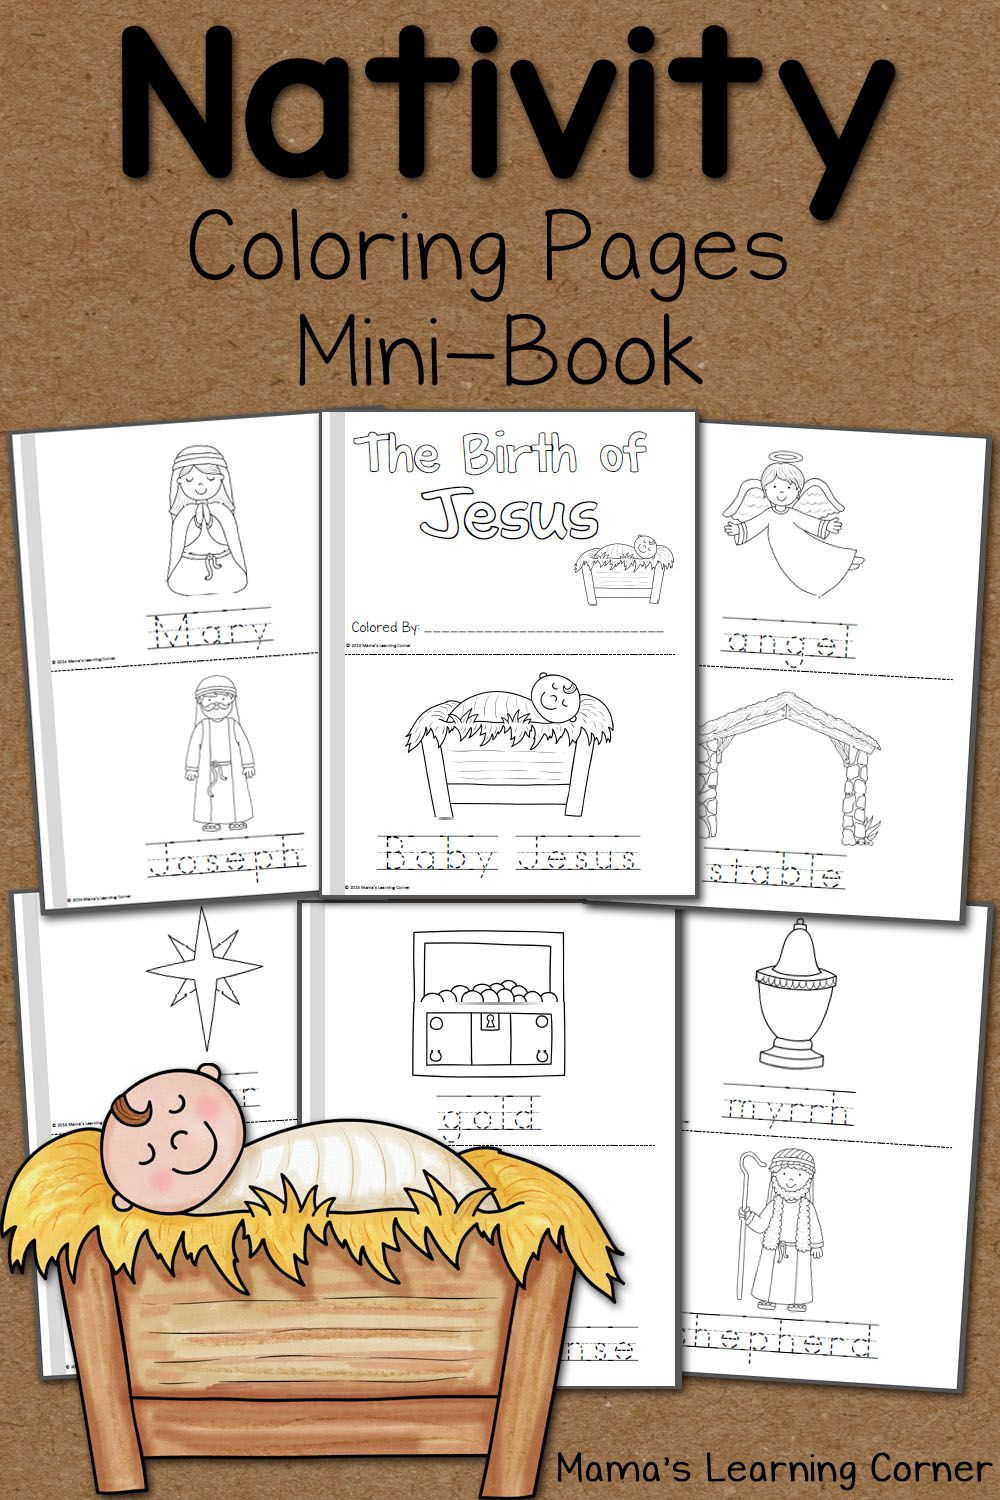 Nativity Coloring Pages | Ultimate Homeschool Board | Nativity - Free Printable Christmas Story Coloring Pages